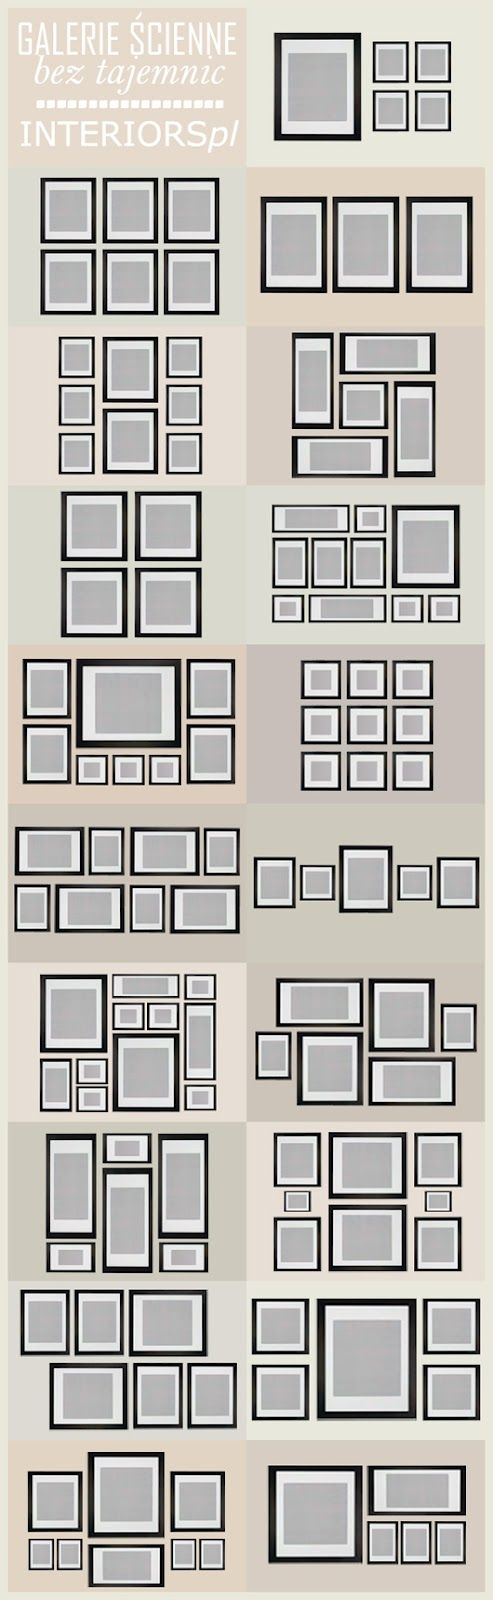 Ideas de composicion para la pared. Guide on how to set wall gallery.